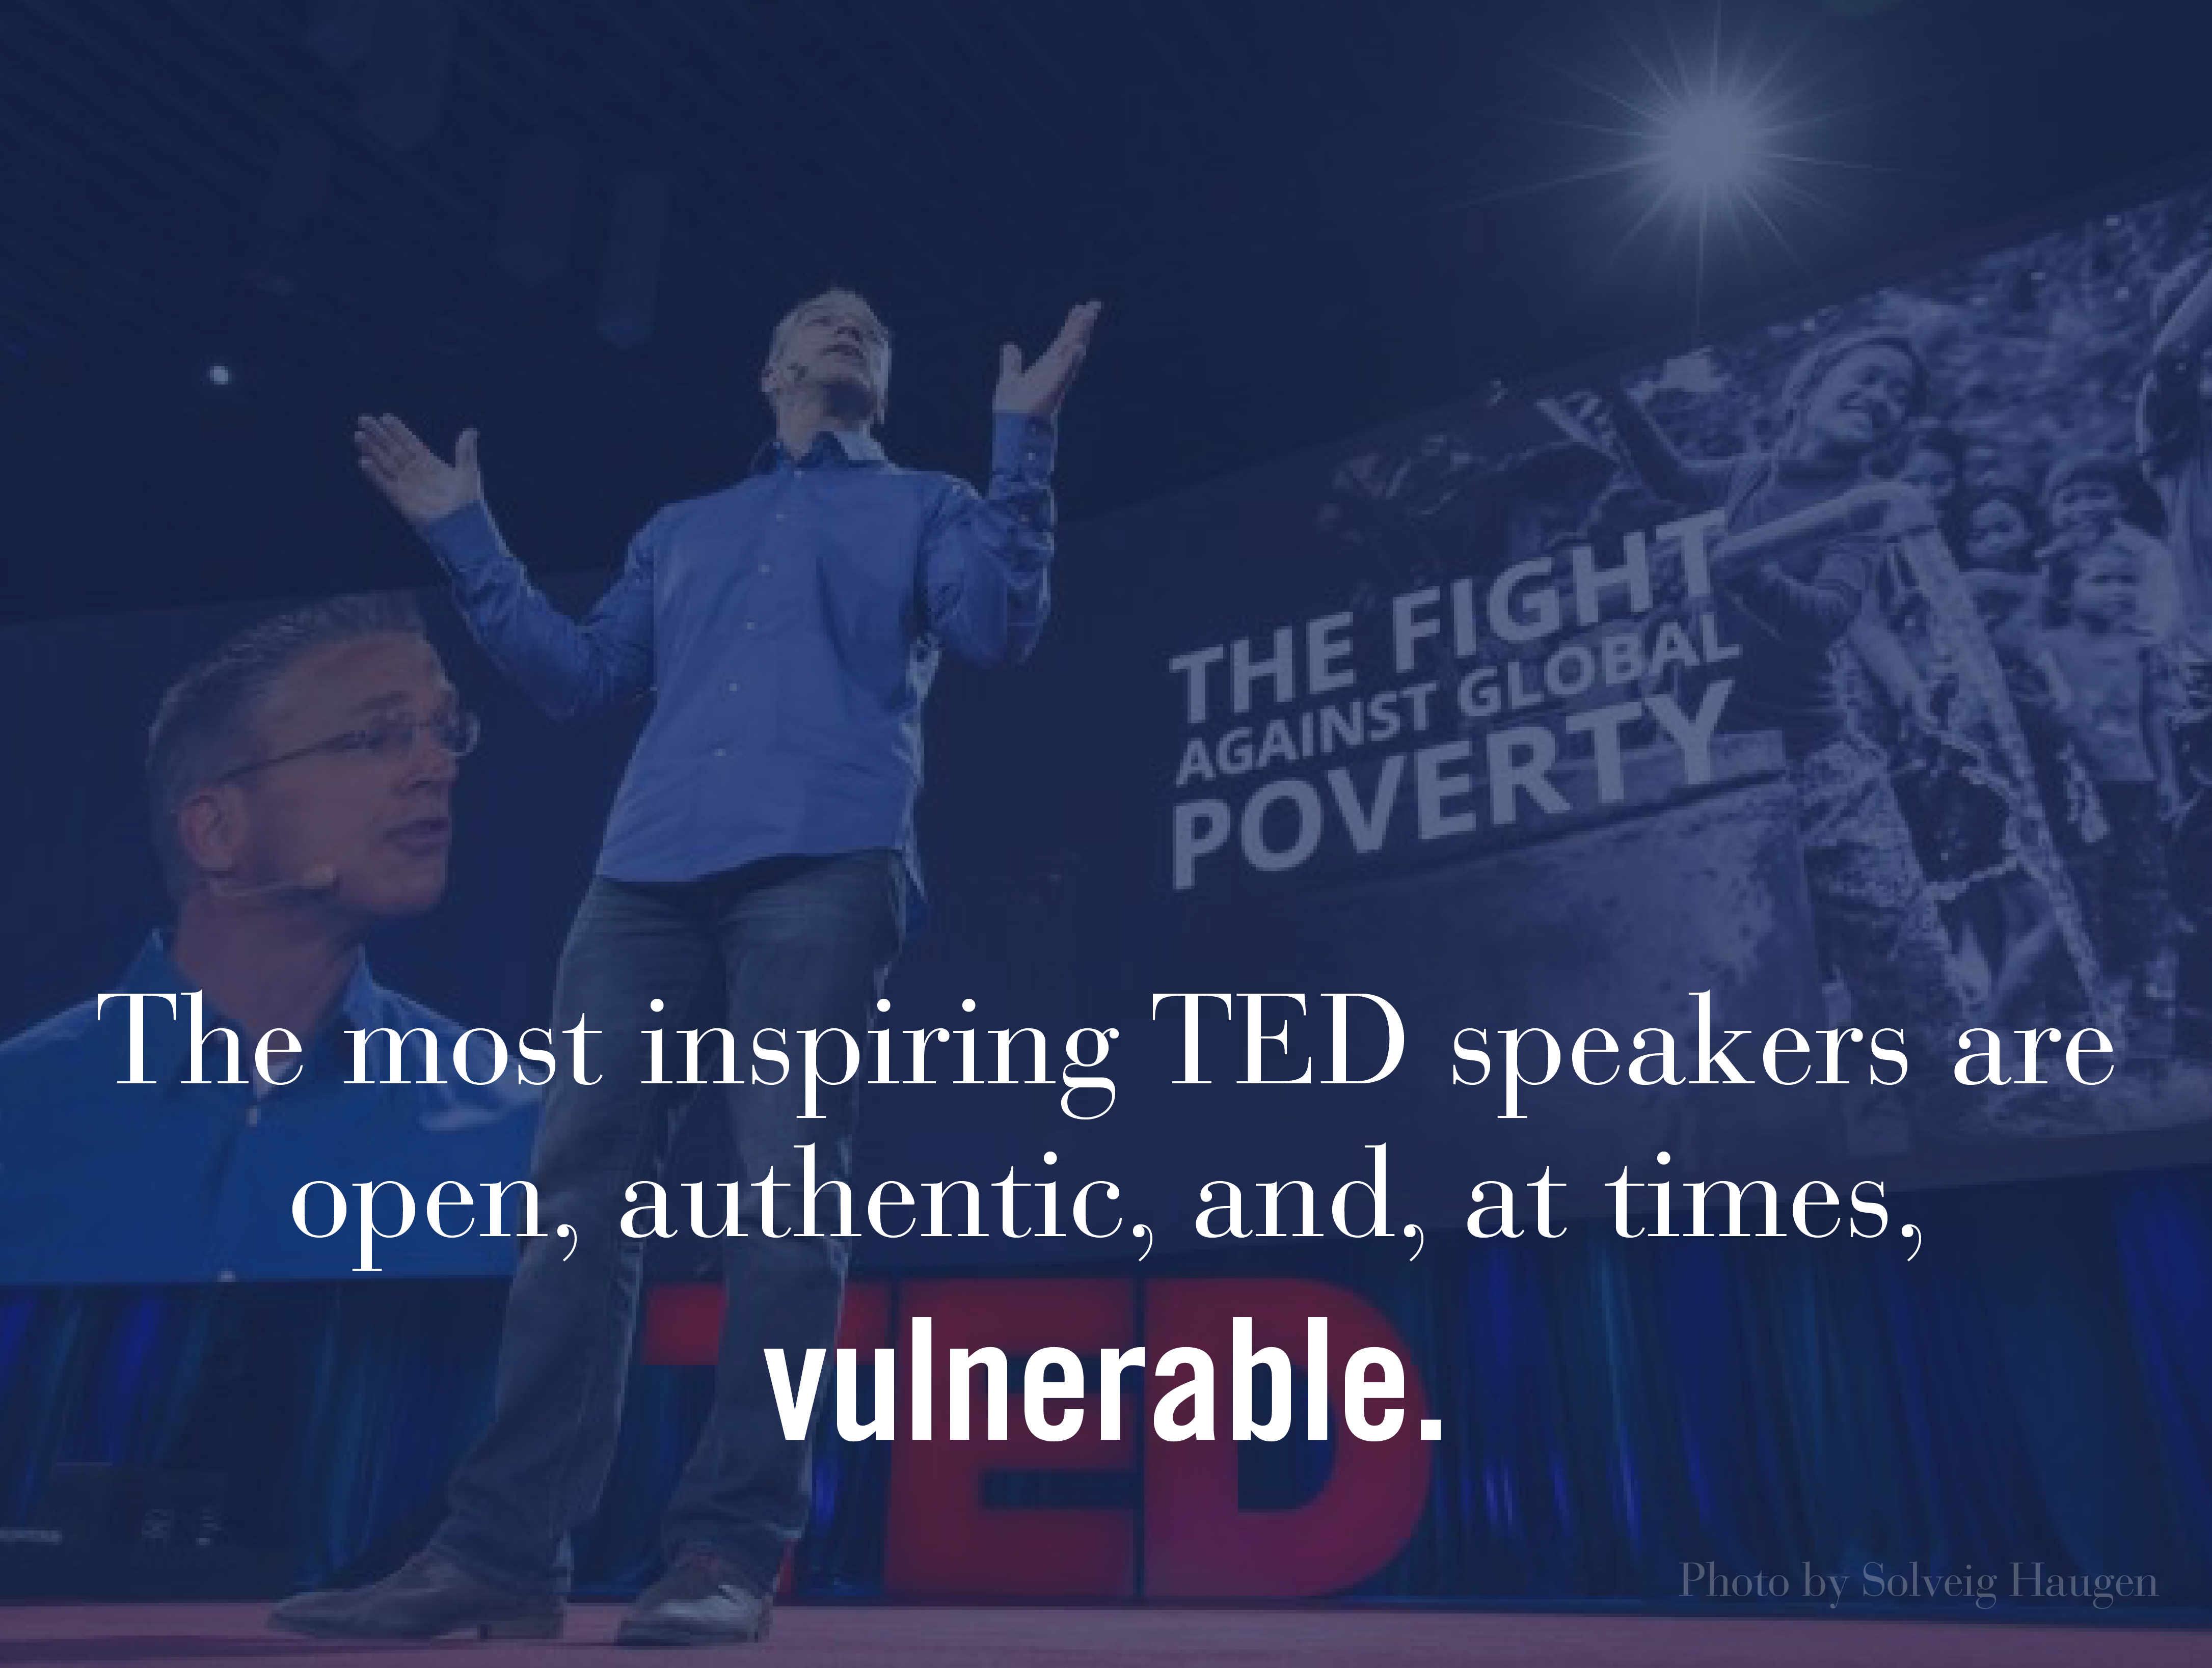 9 Public Speaking Tips from Today's Best TED Talks from Carmine Gallo 3-31